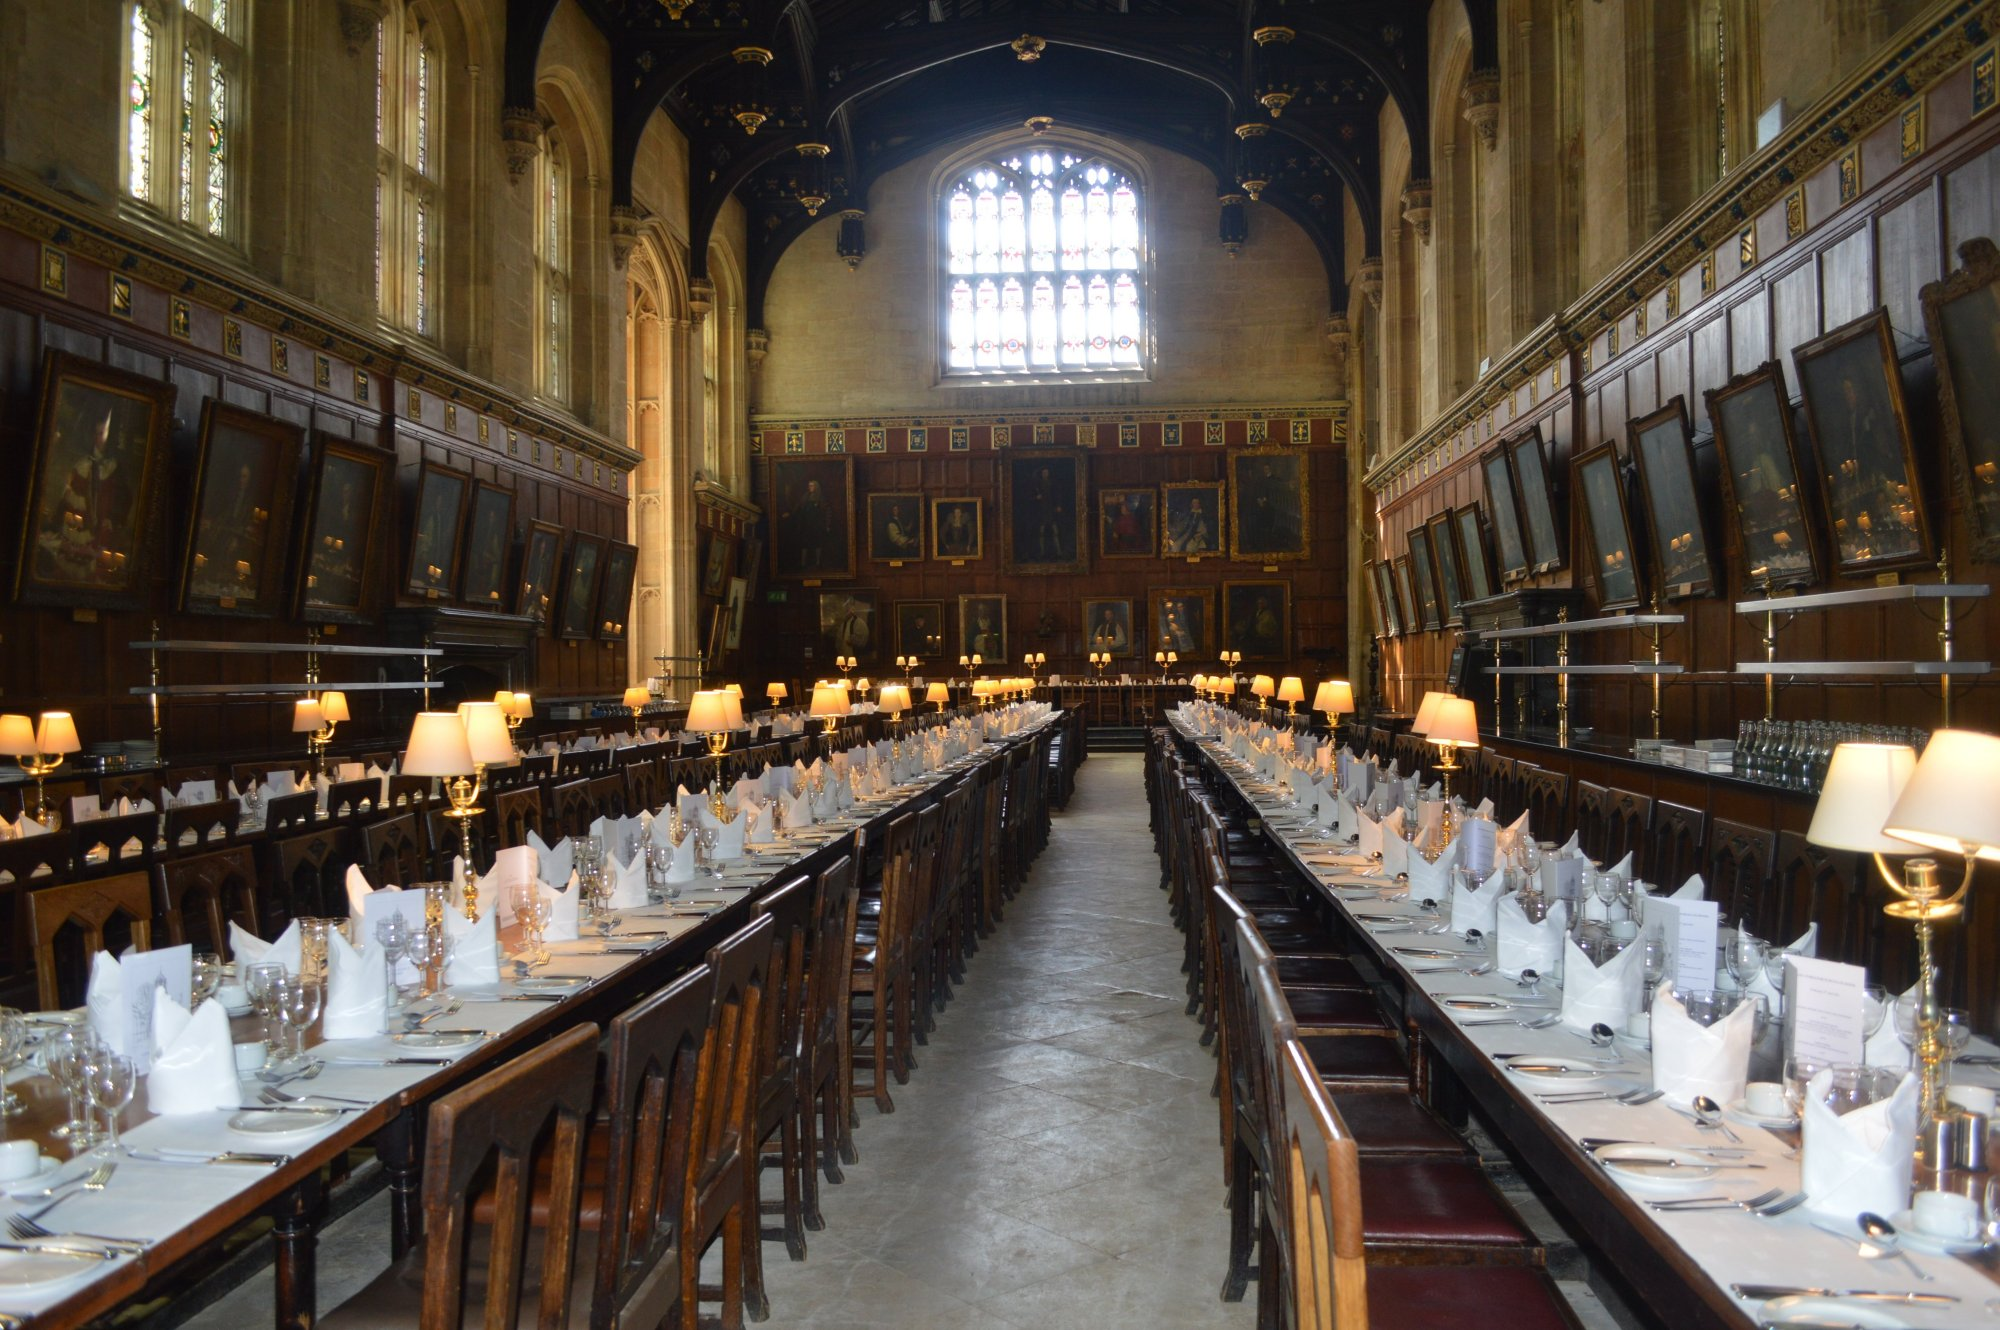 Dining Hall, Oxford